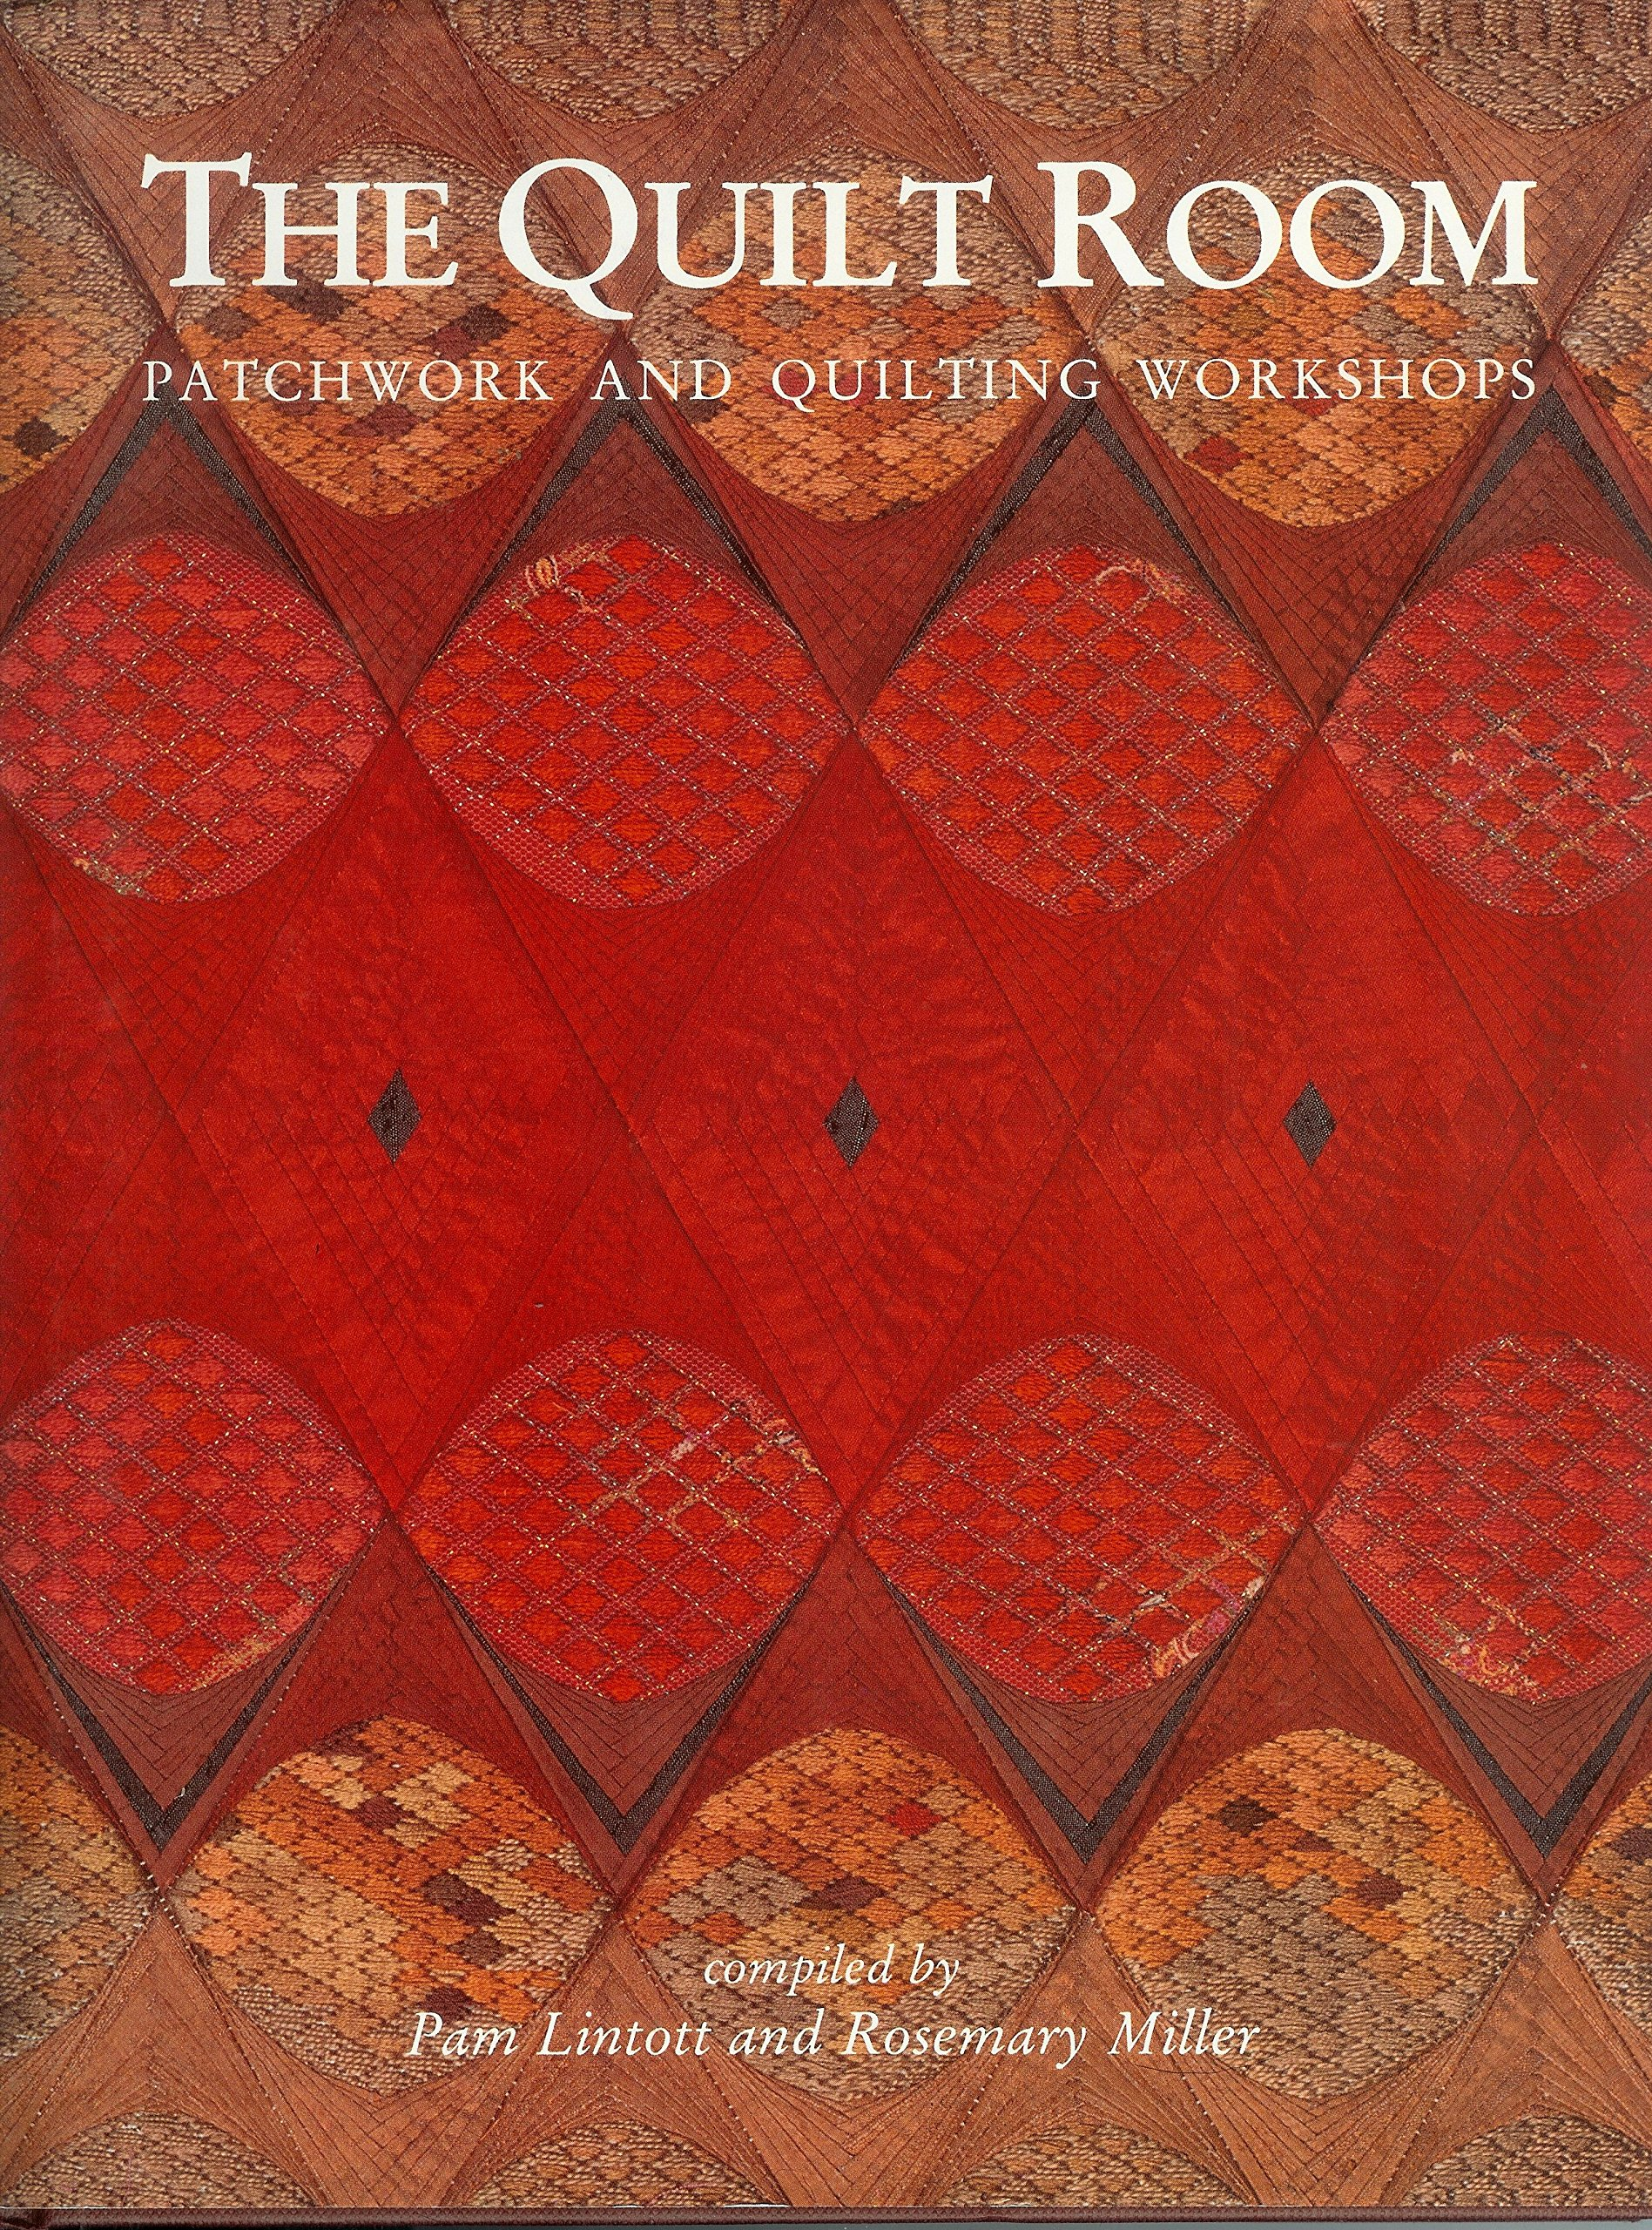 The Quilt Room: Patchwork and Quilting Workshops: Pam Lintott ... : the quilt room - Adamdwight.com